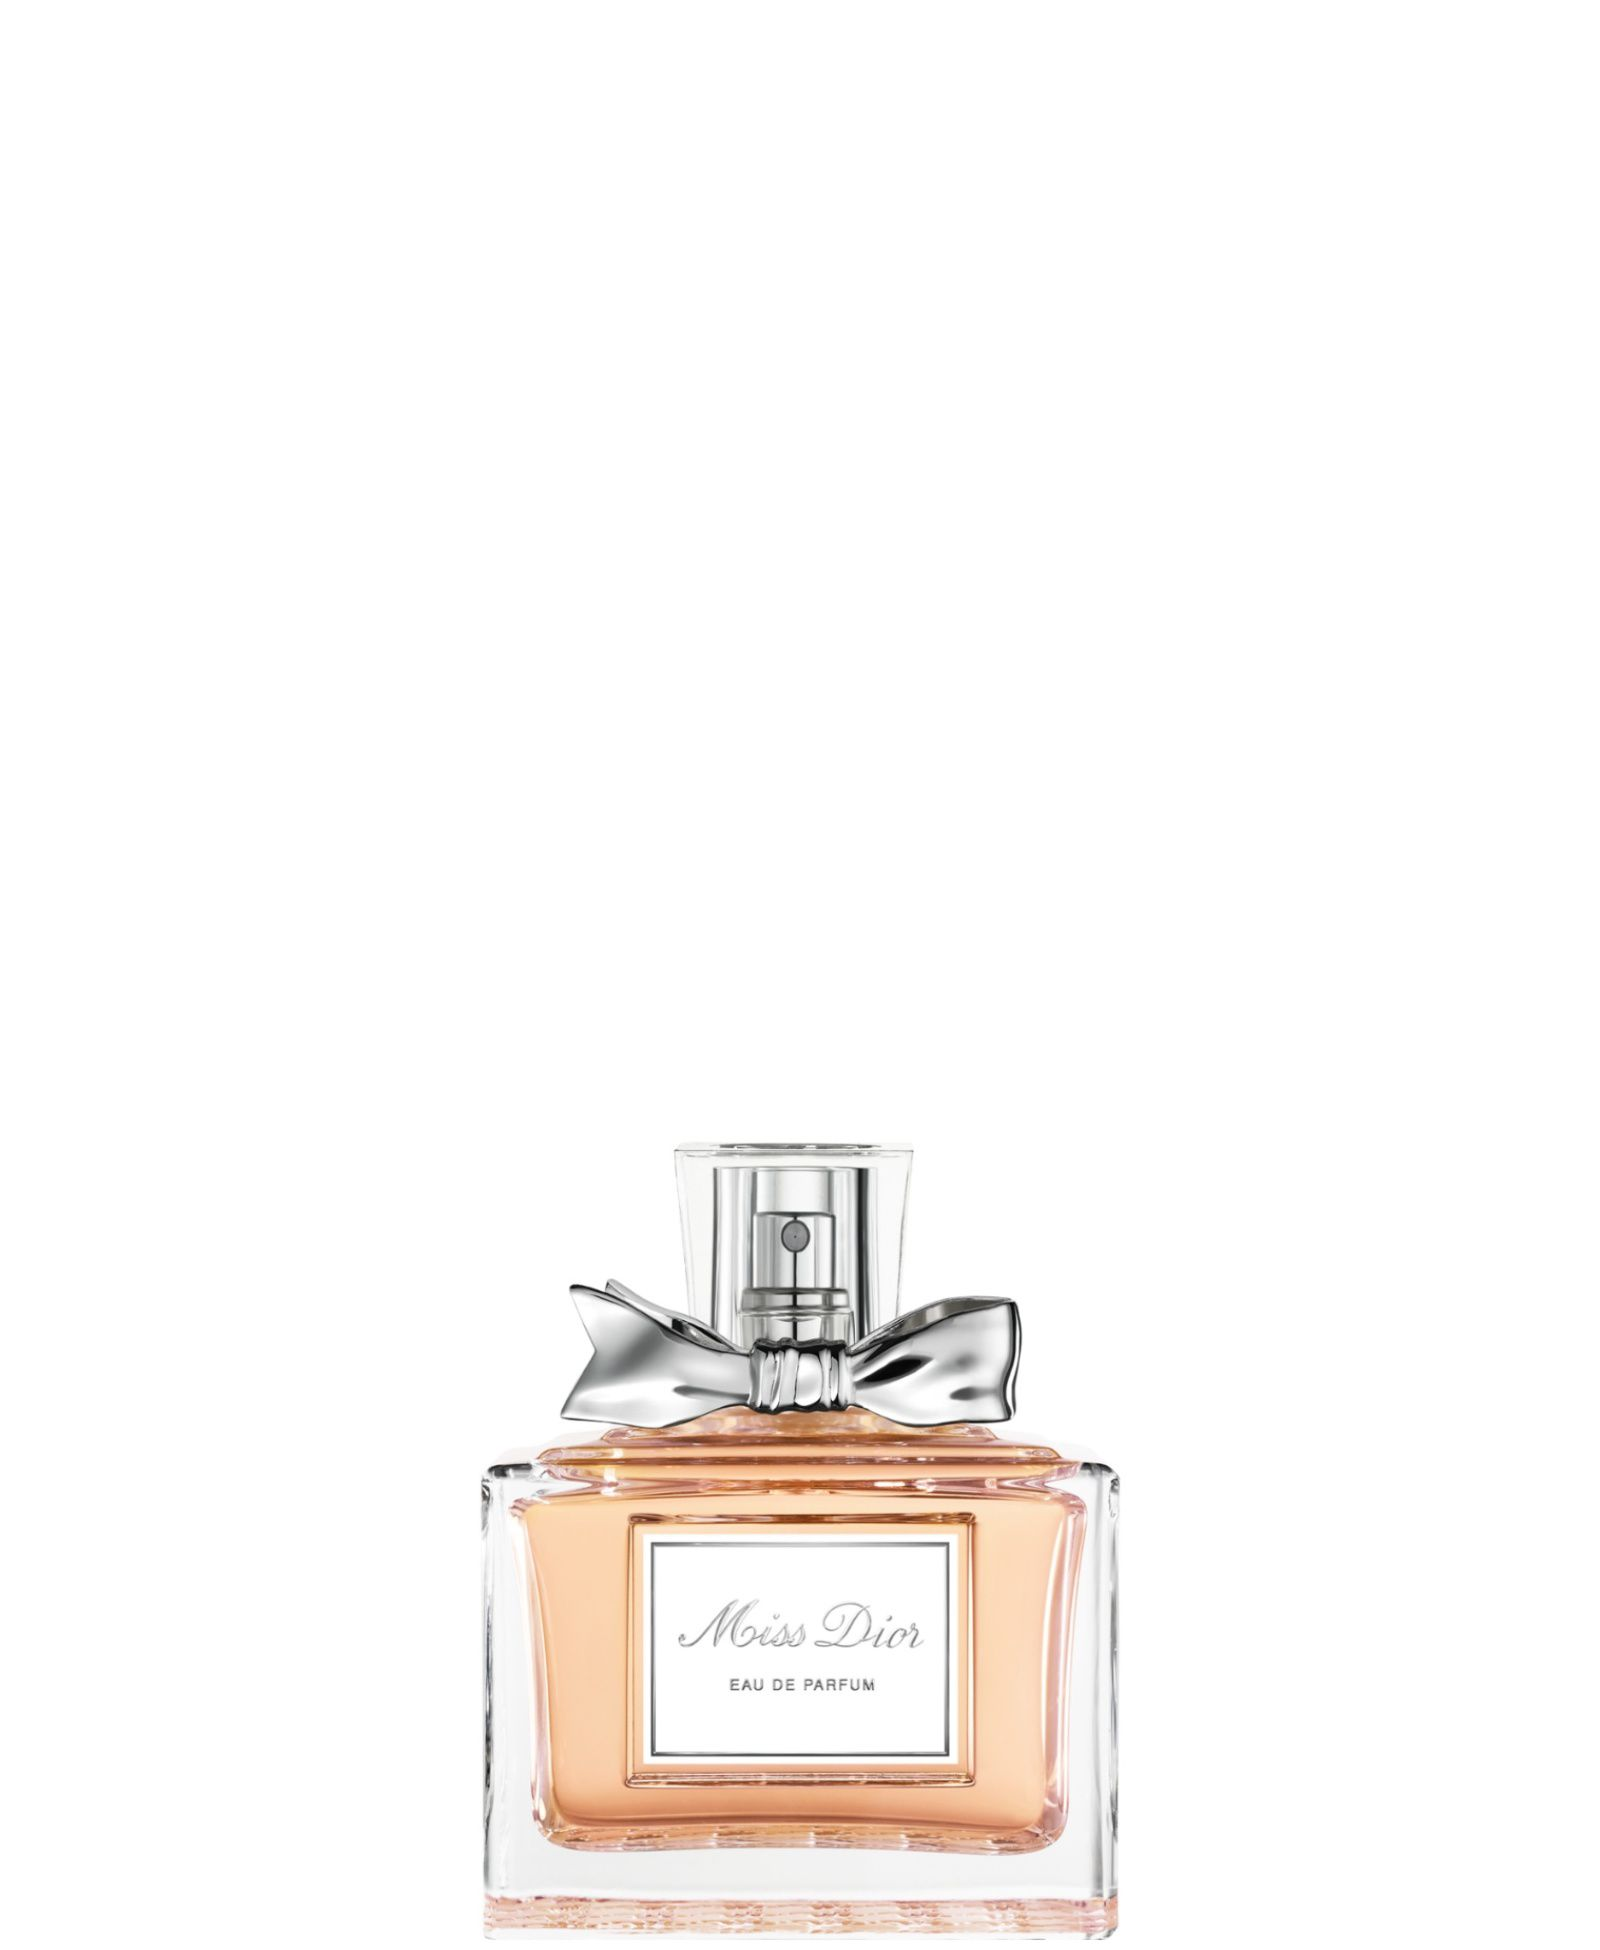 buy cheap miss dior compare fragrance prices for best uk. Black Bedroom Furniture Sets. Home Design Ideas